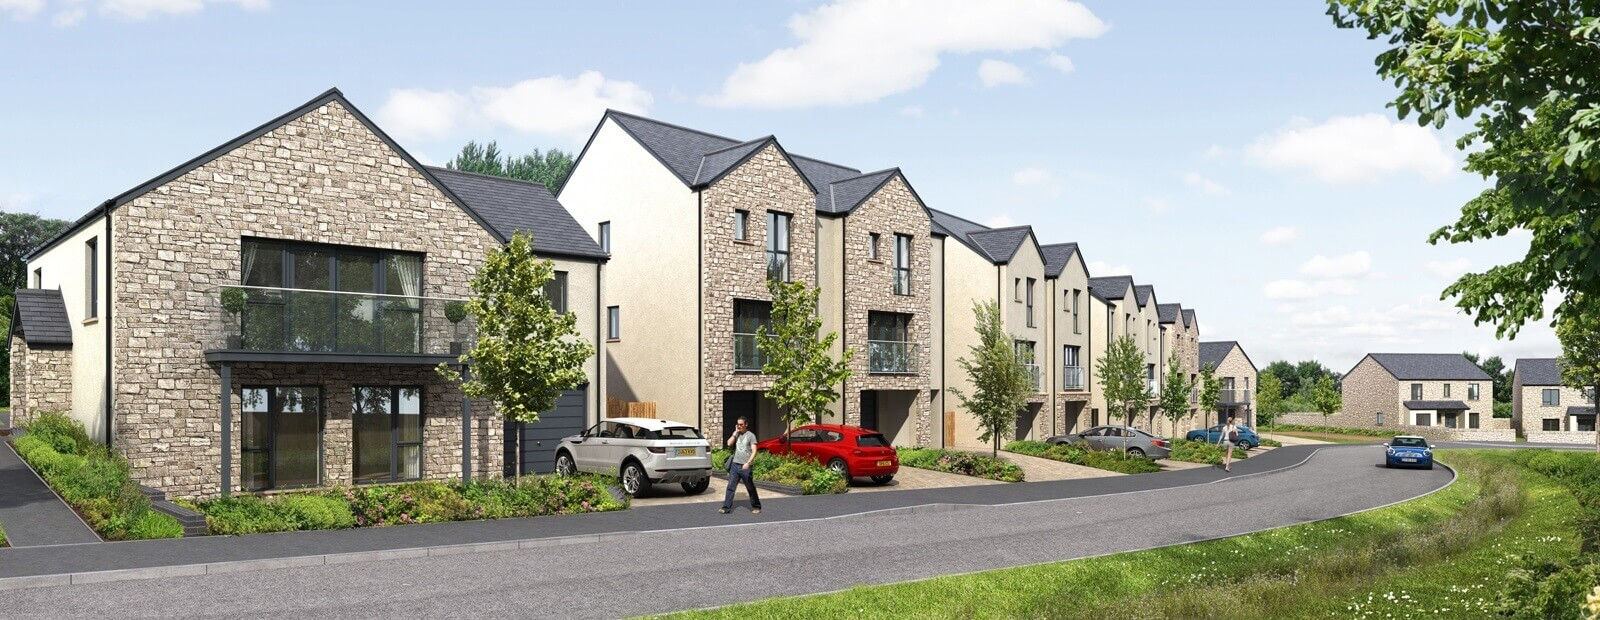 New homes for sale in kirkby lonsdale kendal road russell armer